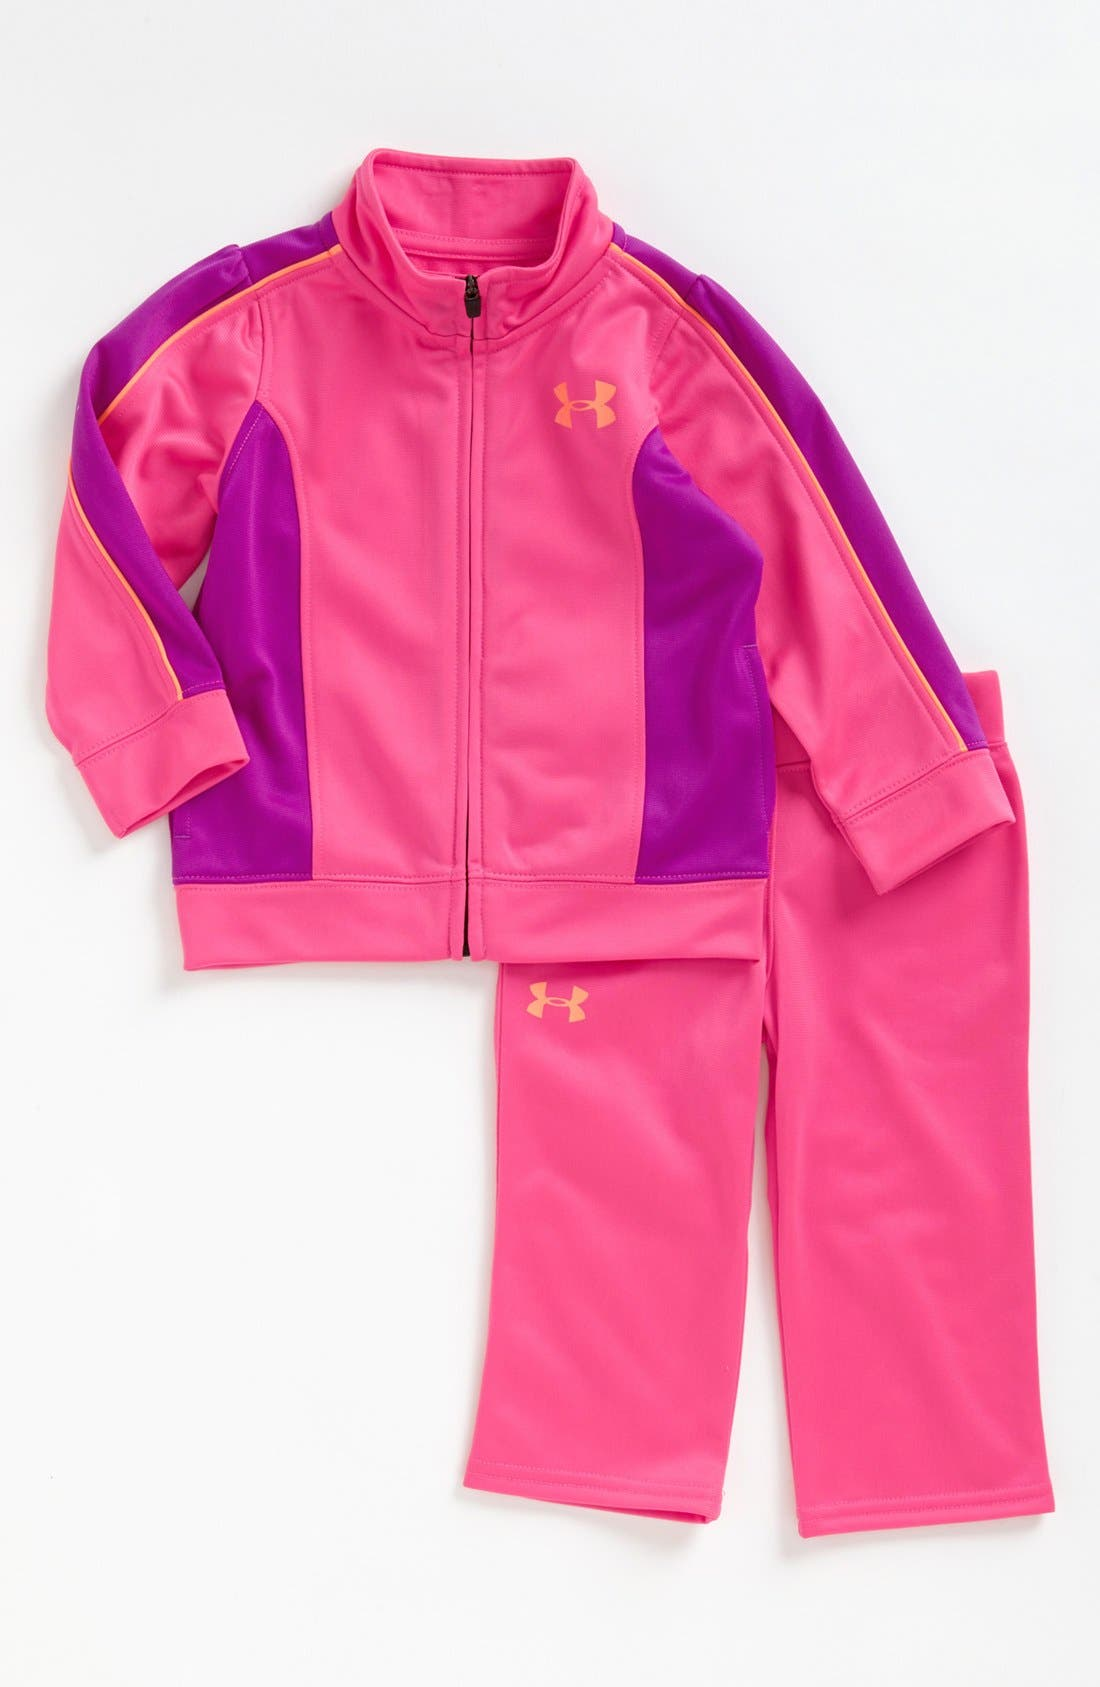 Main Image - Under Armour Track Jacket & Pants (Toddler Girls) (Online Only)